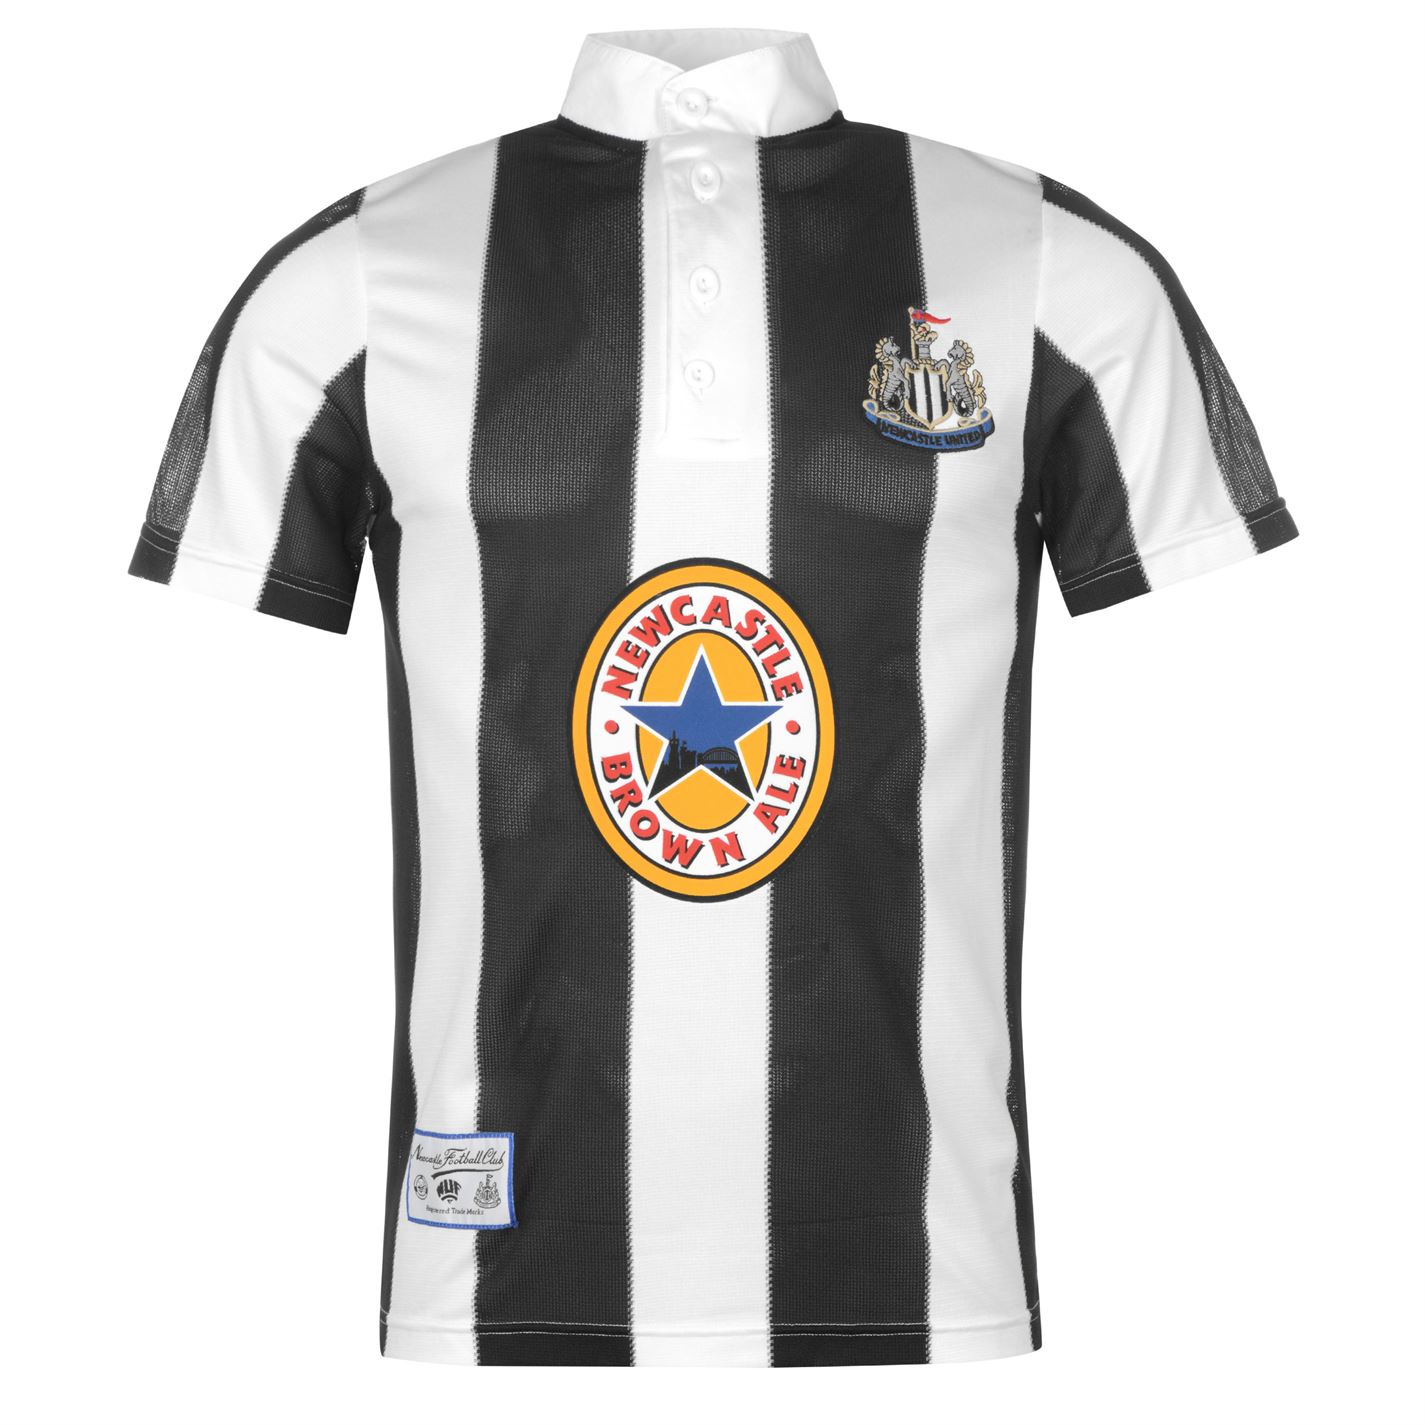 Awesome - 8 Newcastle United Retro Kits Released